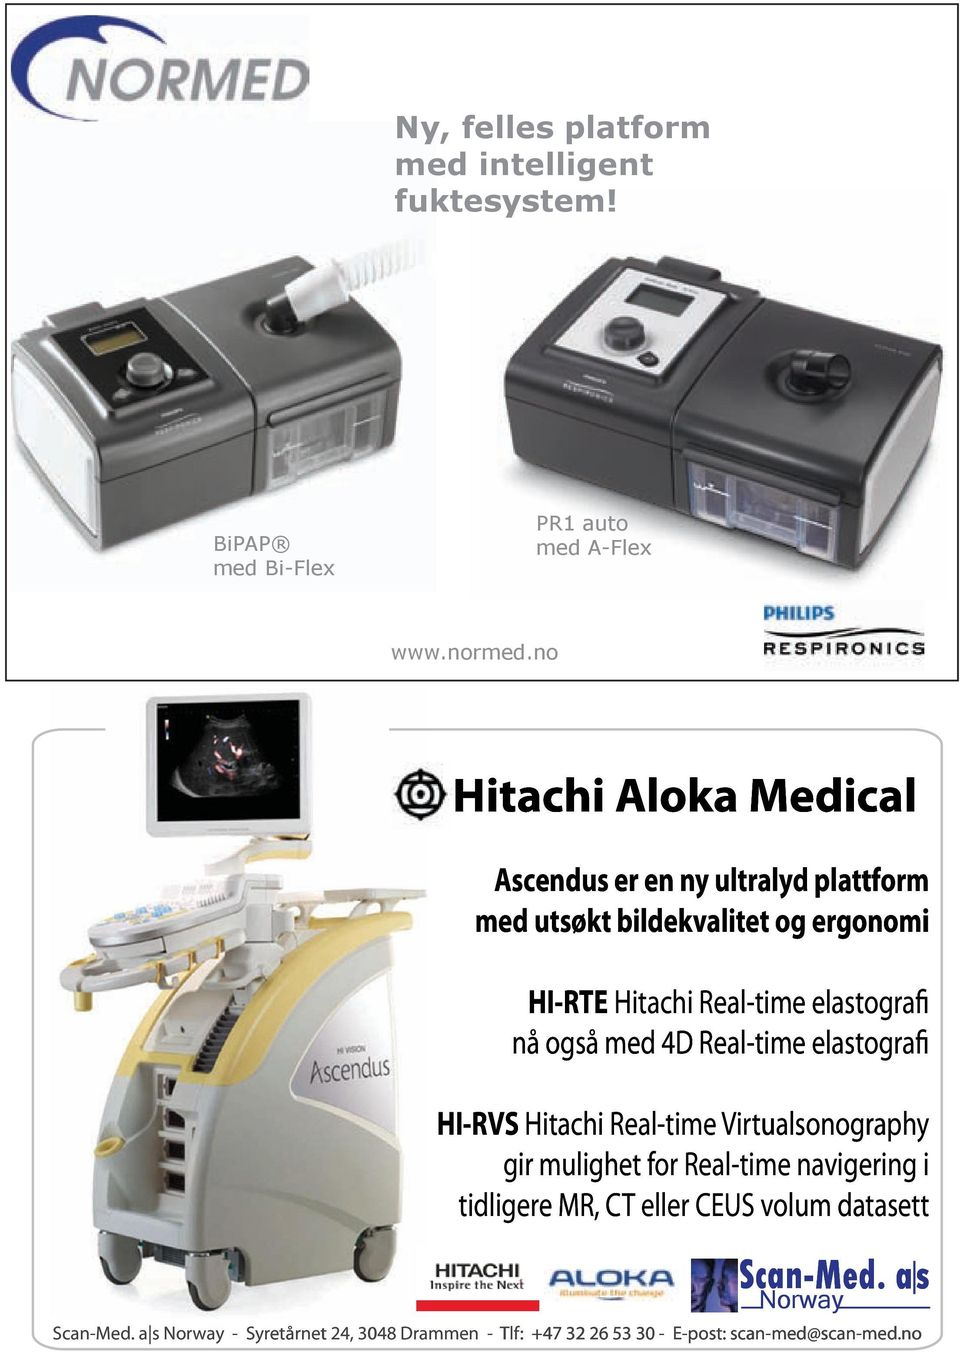 elastografi nå også med 4D Real-time elastografi HI-RVS Hitachi Real-time Virtualsonography gir mulighet for Real-time navigering